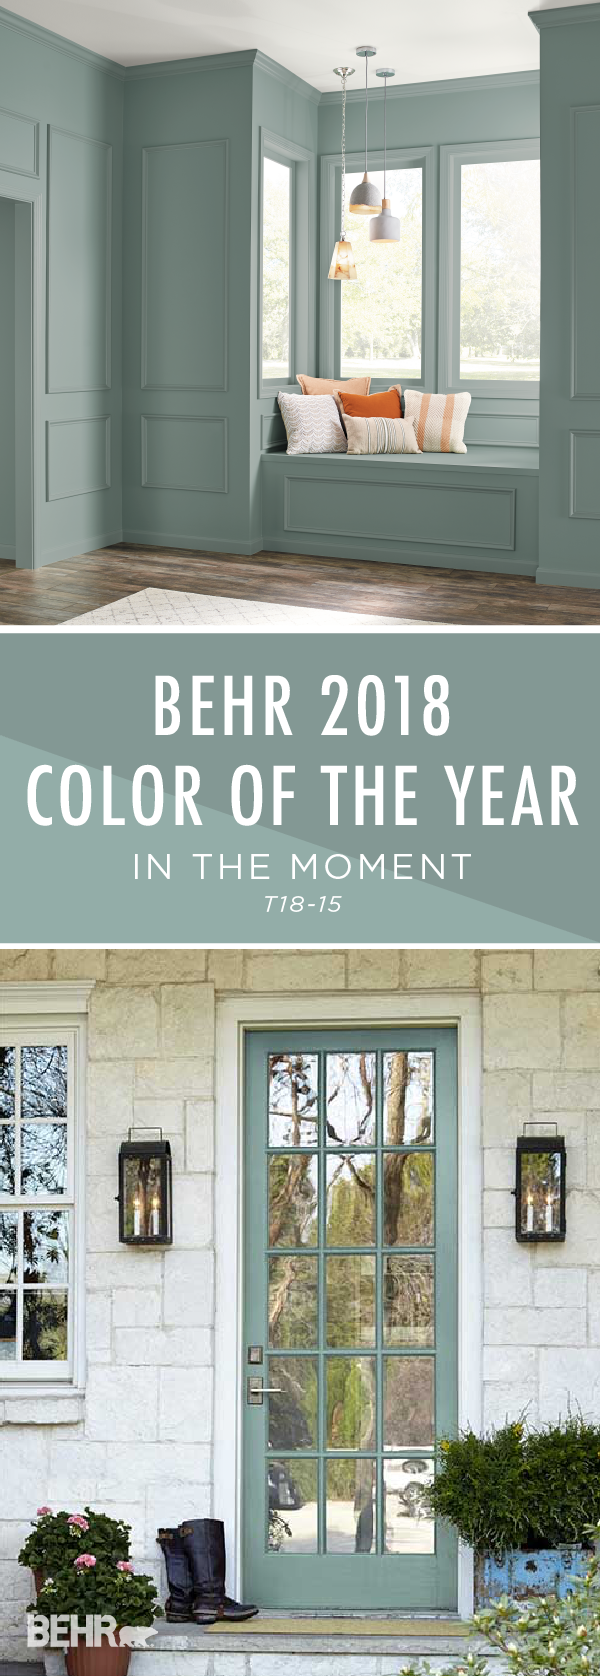 introducing the behr 2018 color of the year  in the moment  with undertones of blue  gray  and